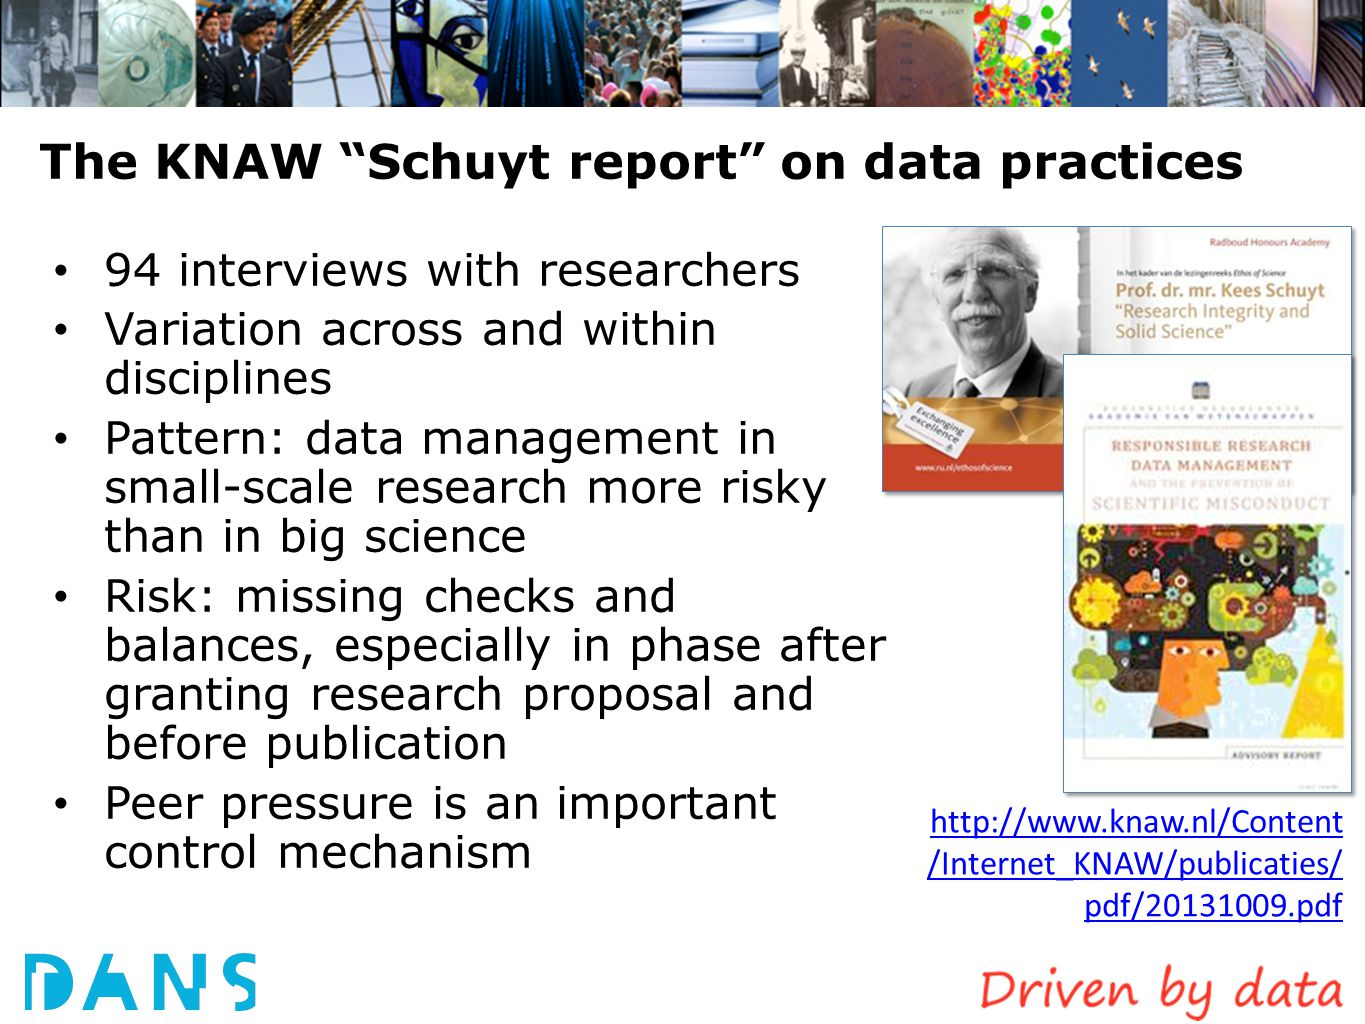 The KNAW Schuyt report on data practices